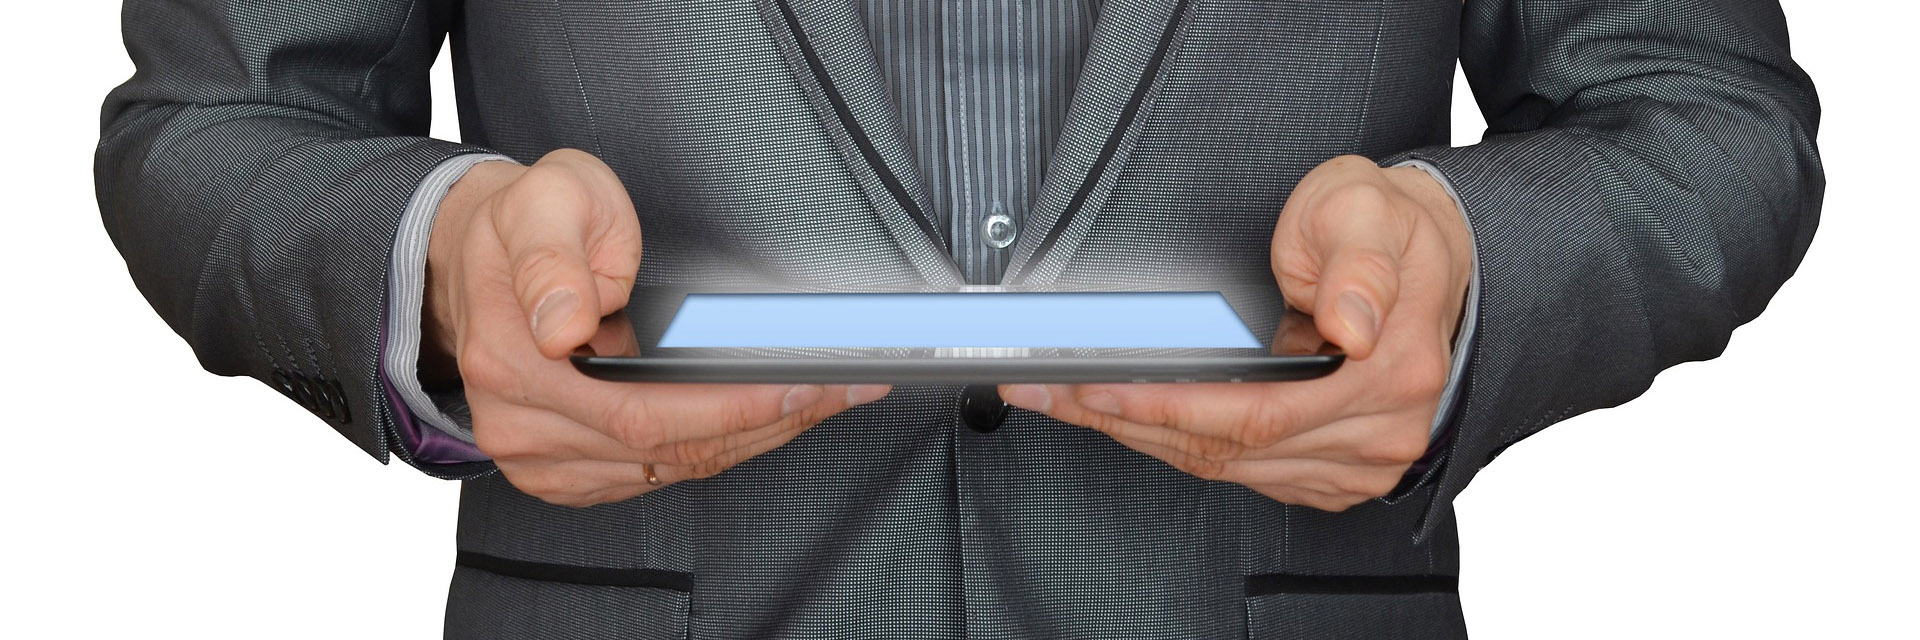 Man in Suit Holding Tablet